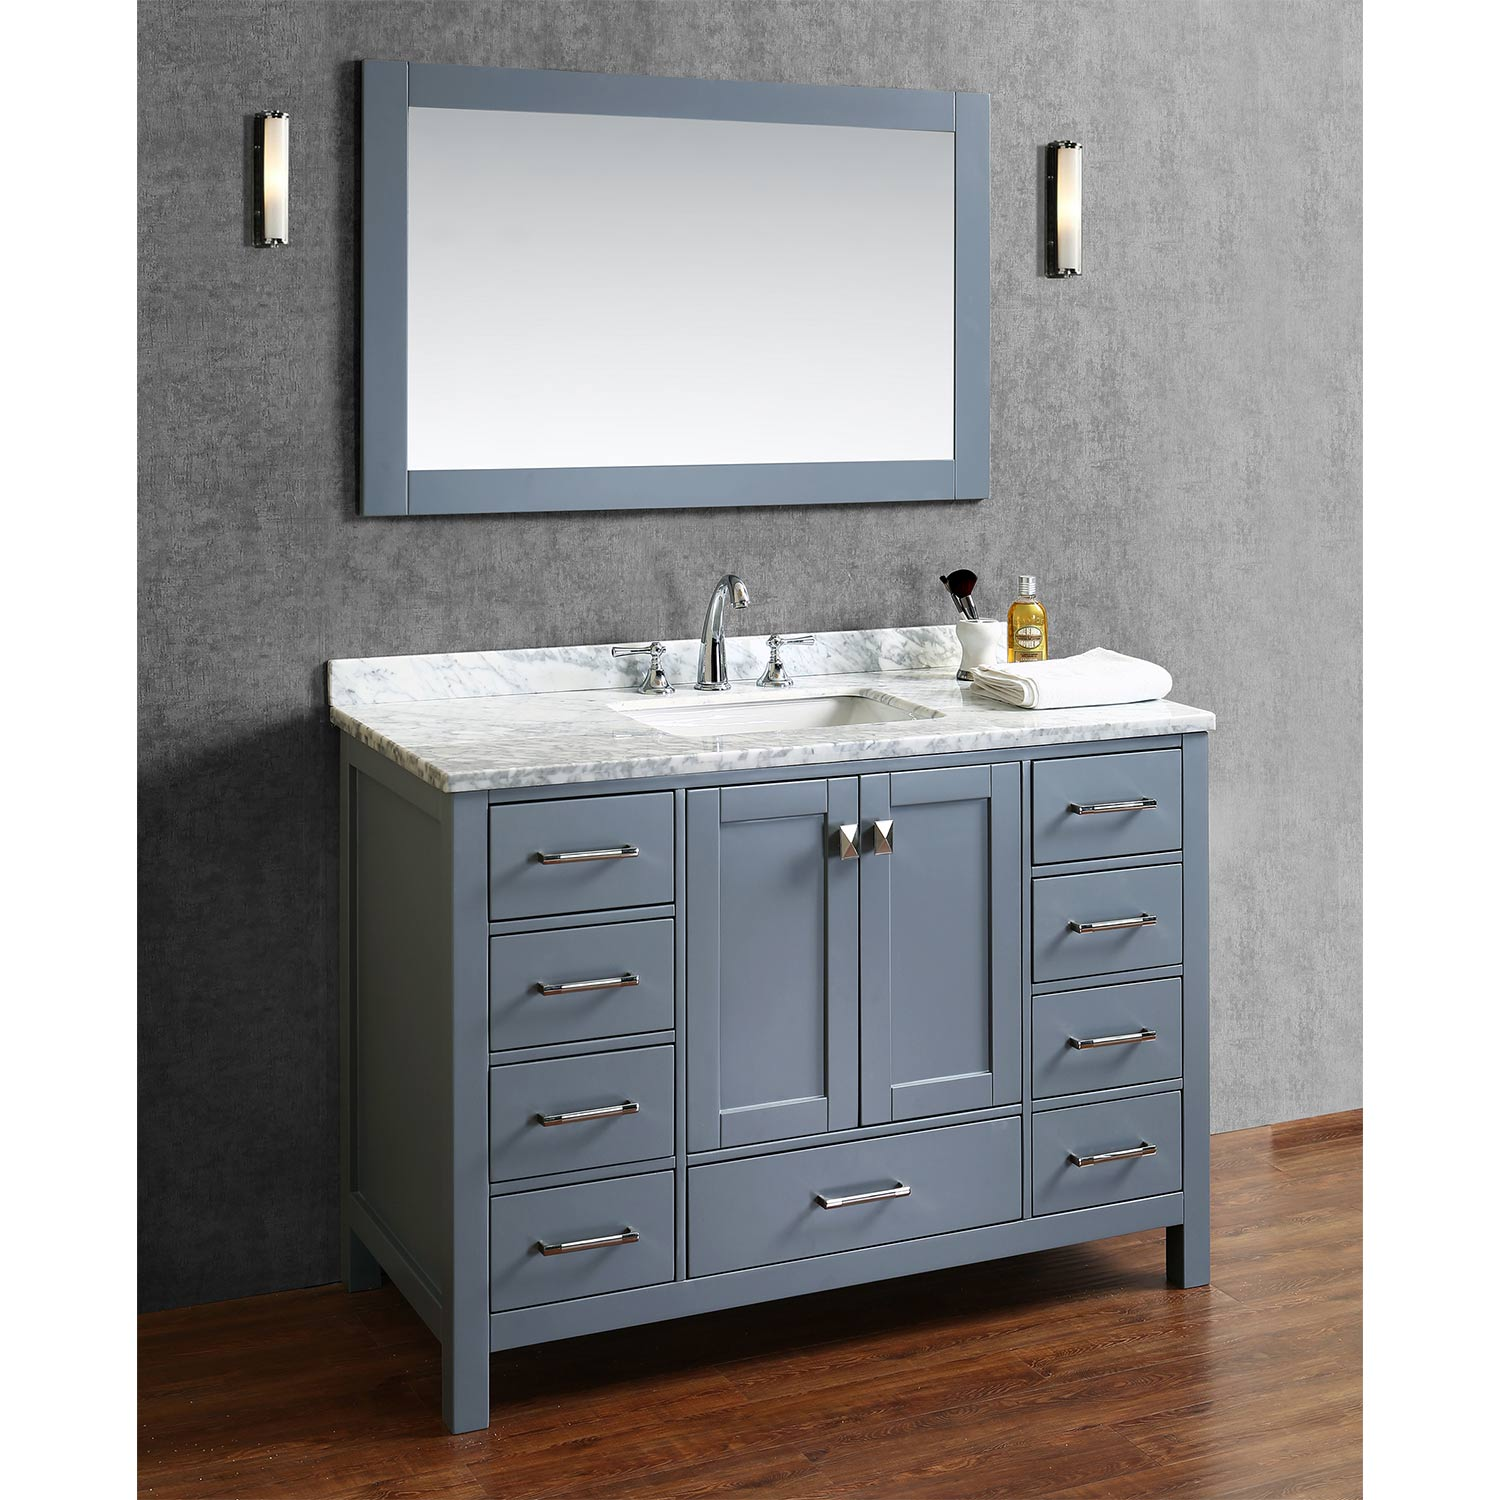 glossy with collection piana ceramic inch sink mare product and modern single bathroom mirror gray grey mount wall vanity